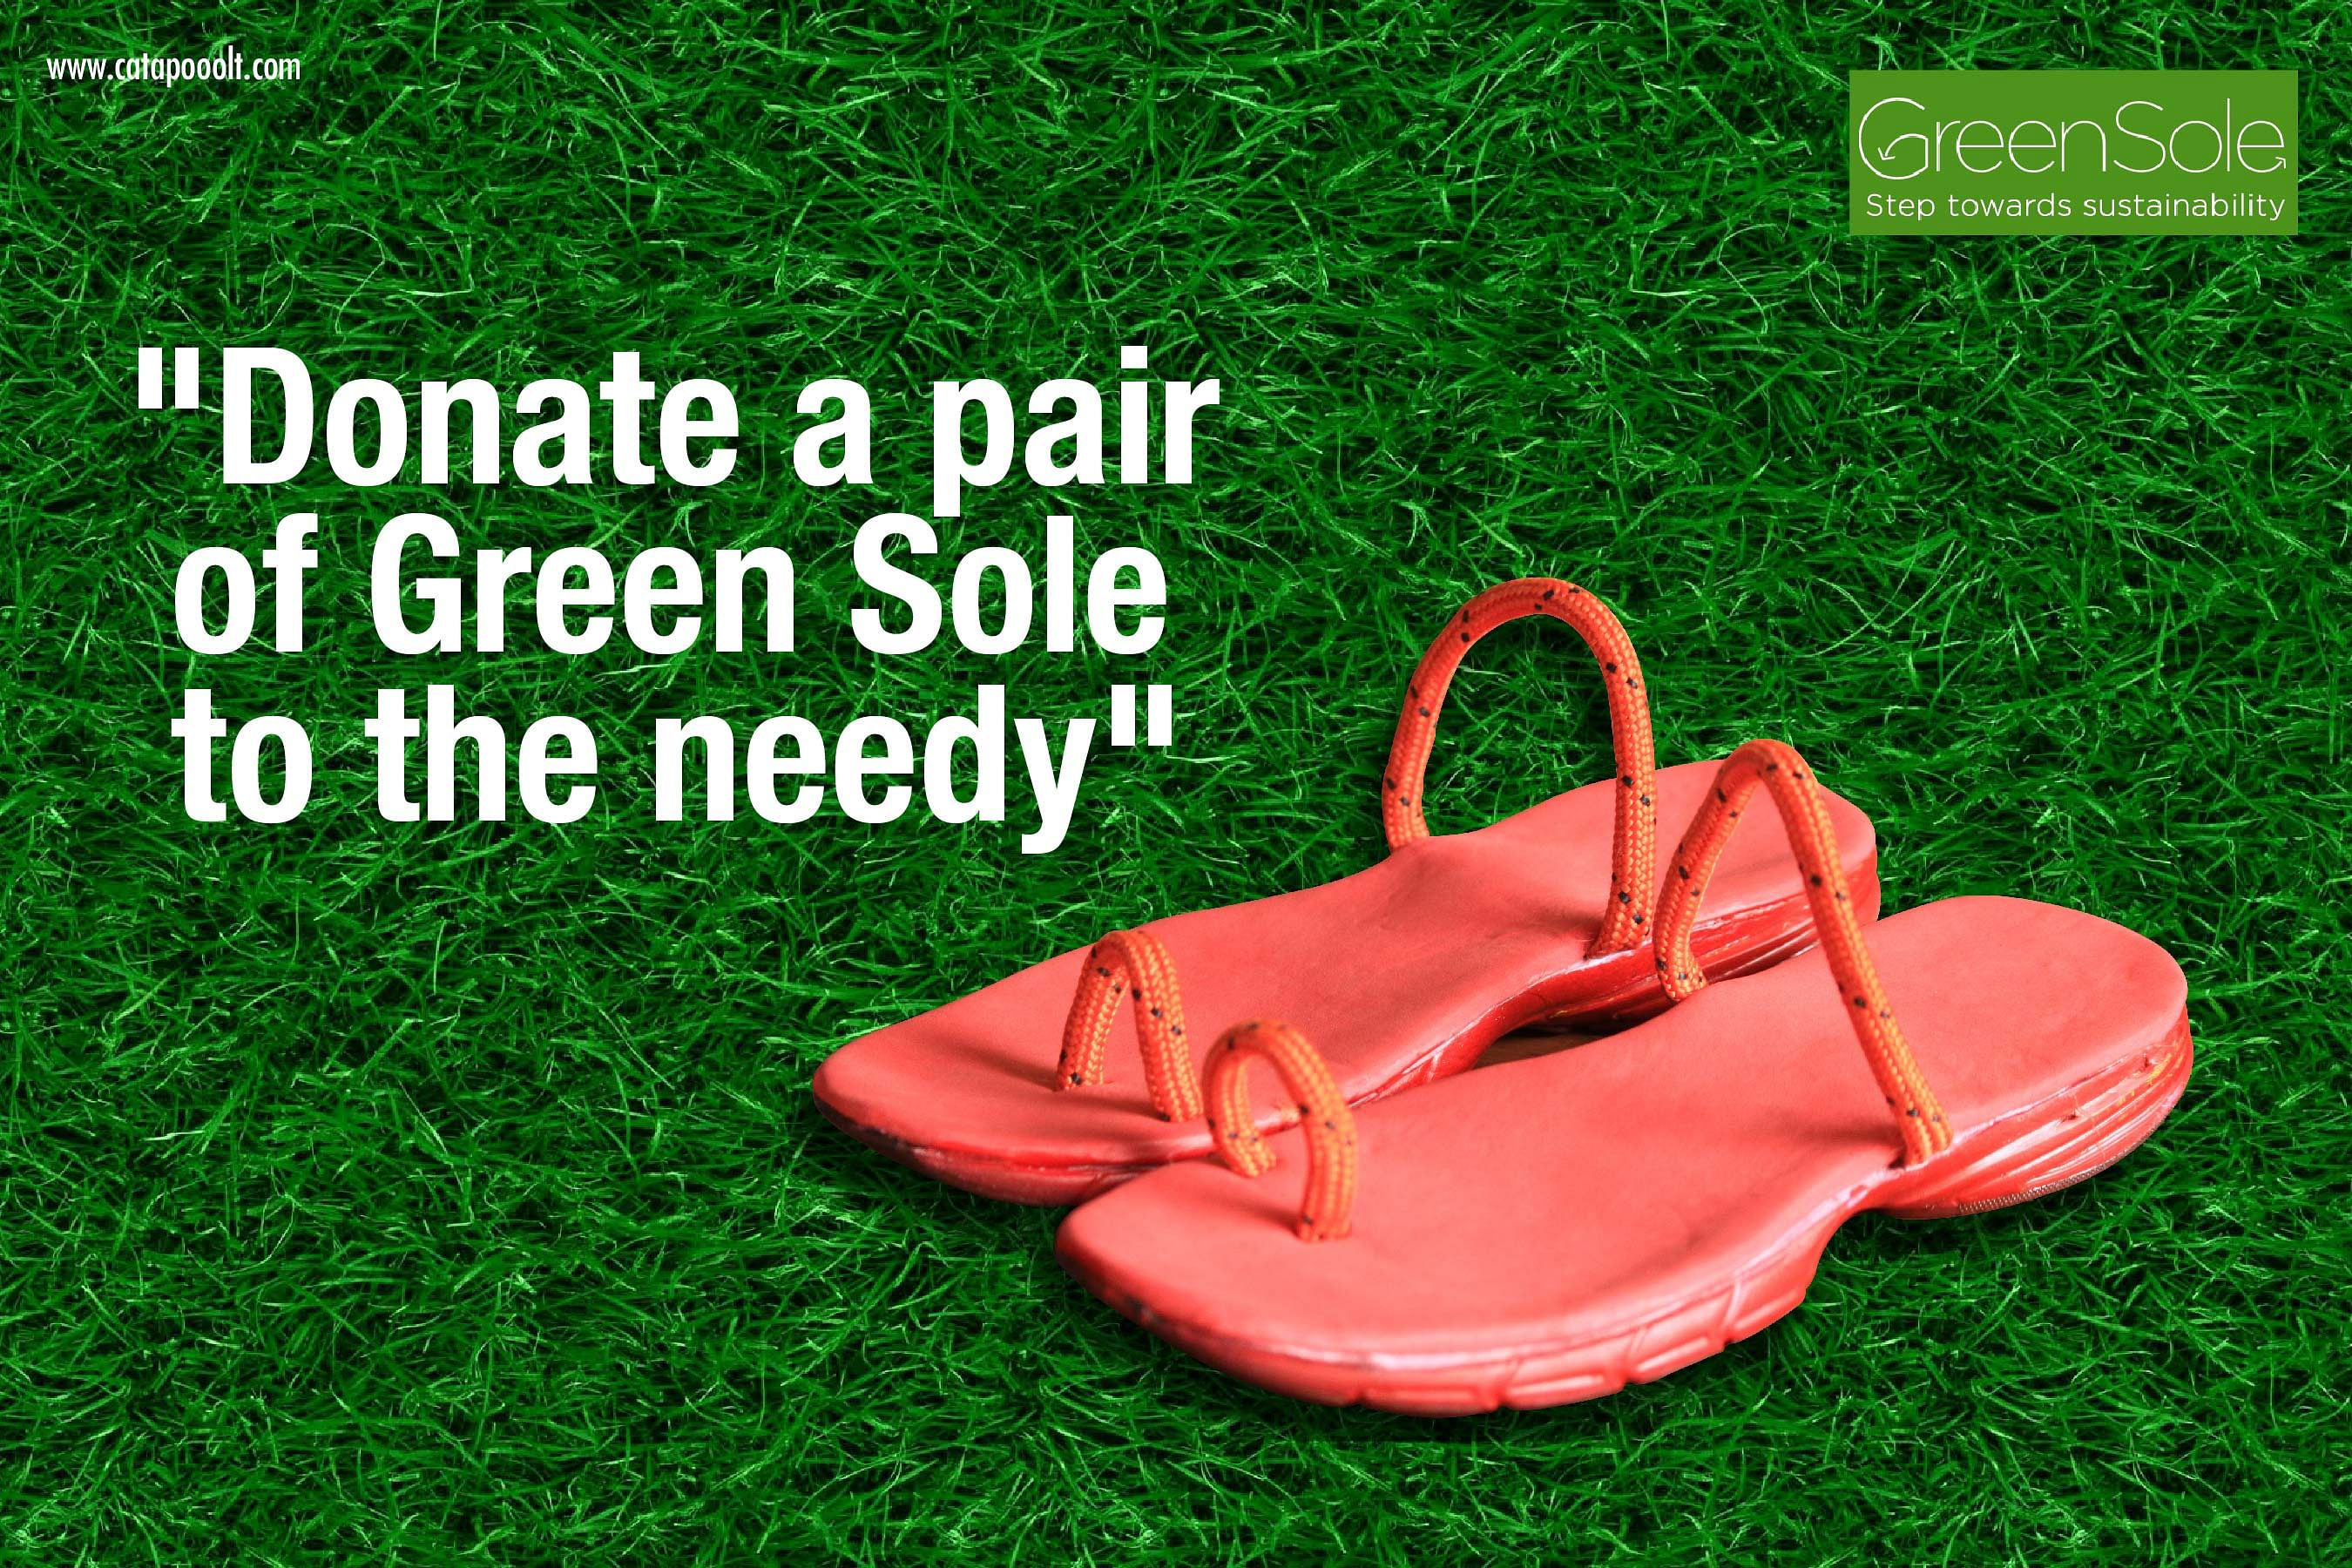 Support the Pioneers in refurbishing sports shoes into slippers!